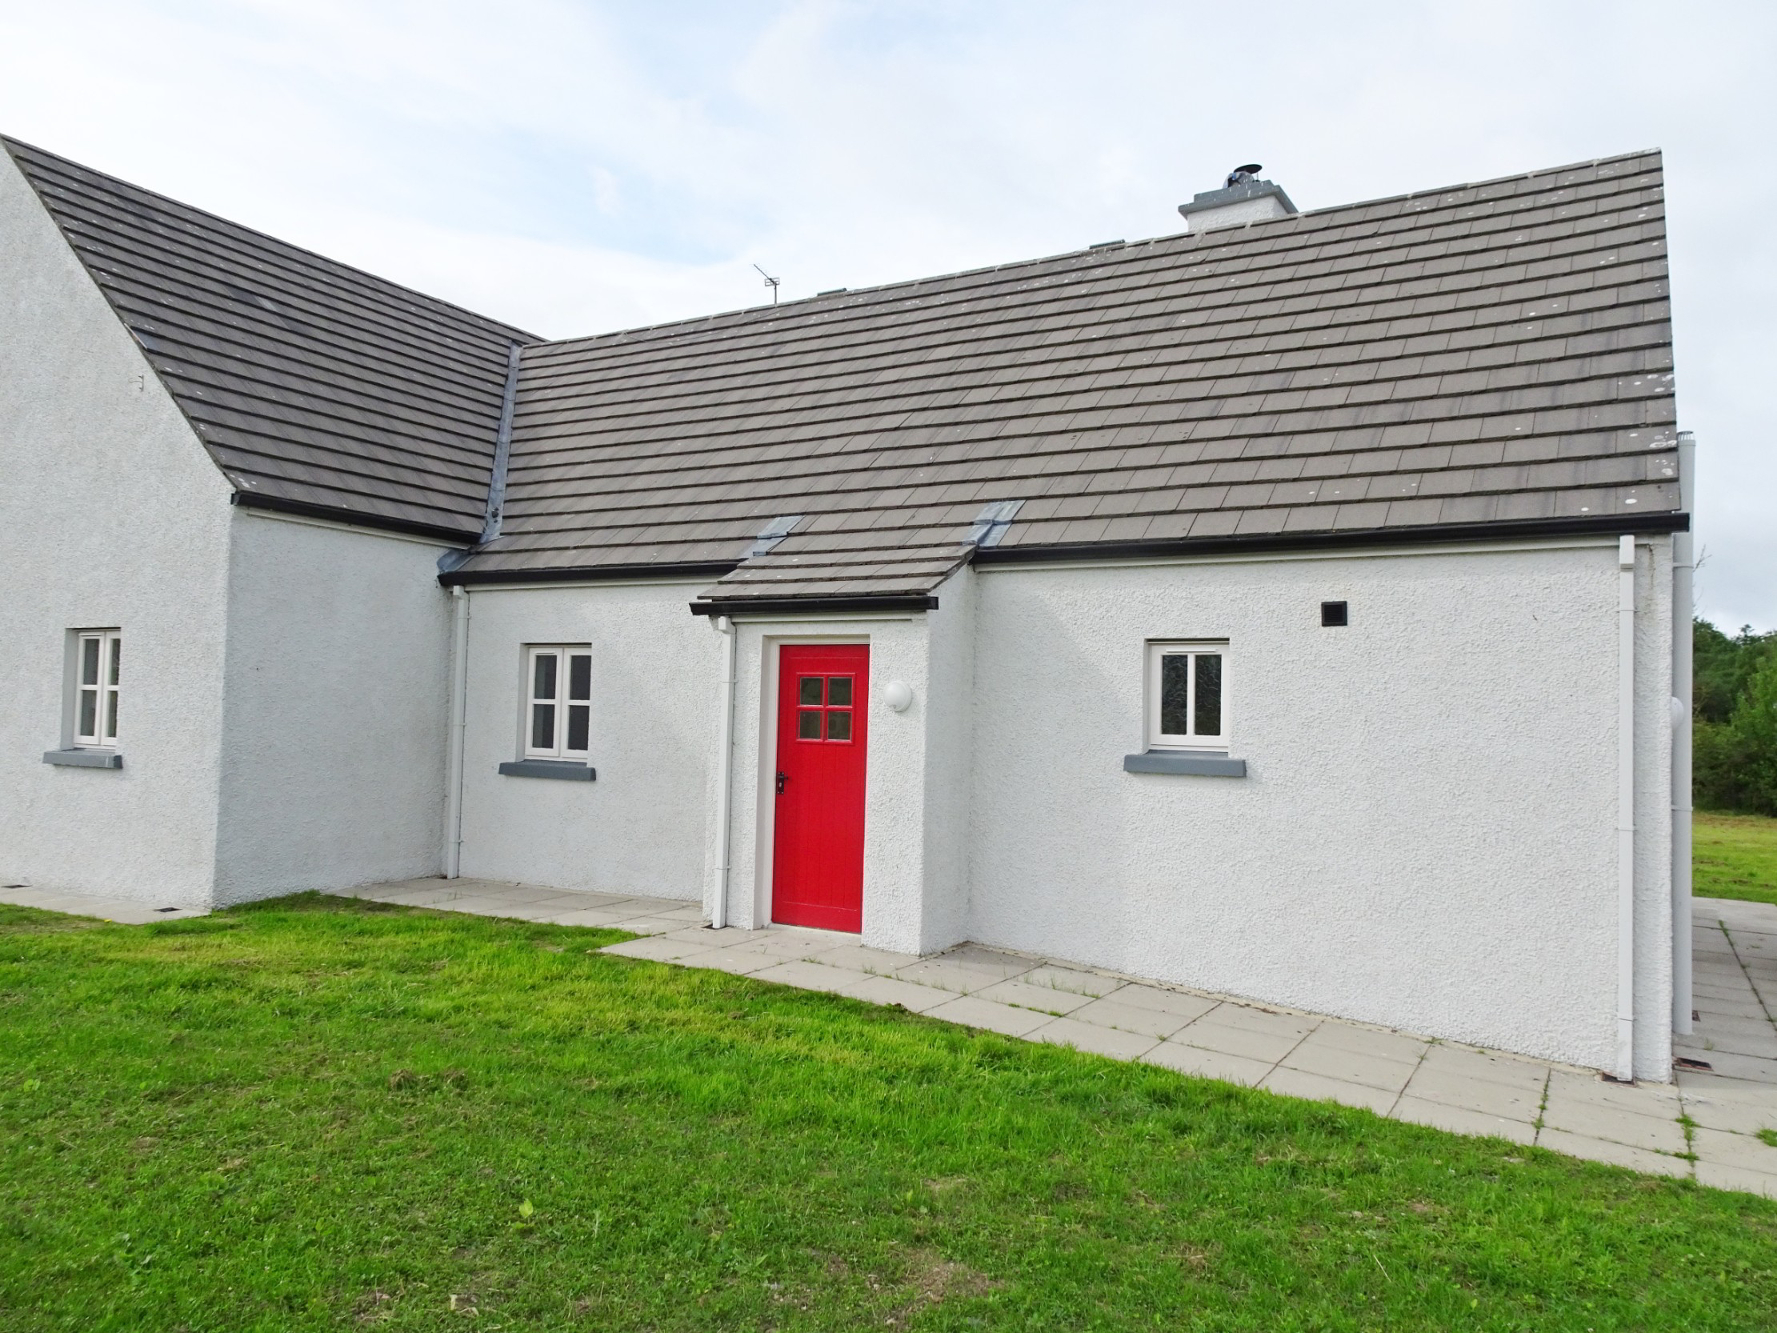 Photo 1 of Innishore Cottage, Corraquil Country Cottages, Teemore, Derrylin